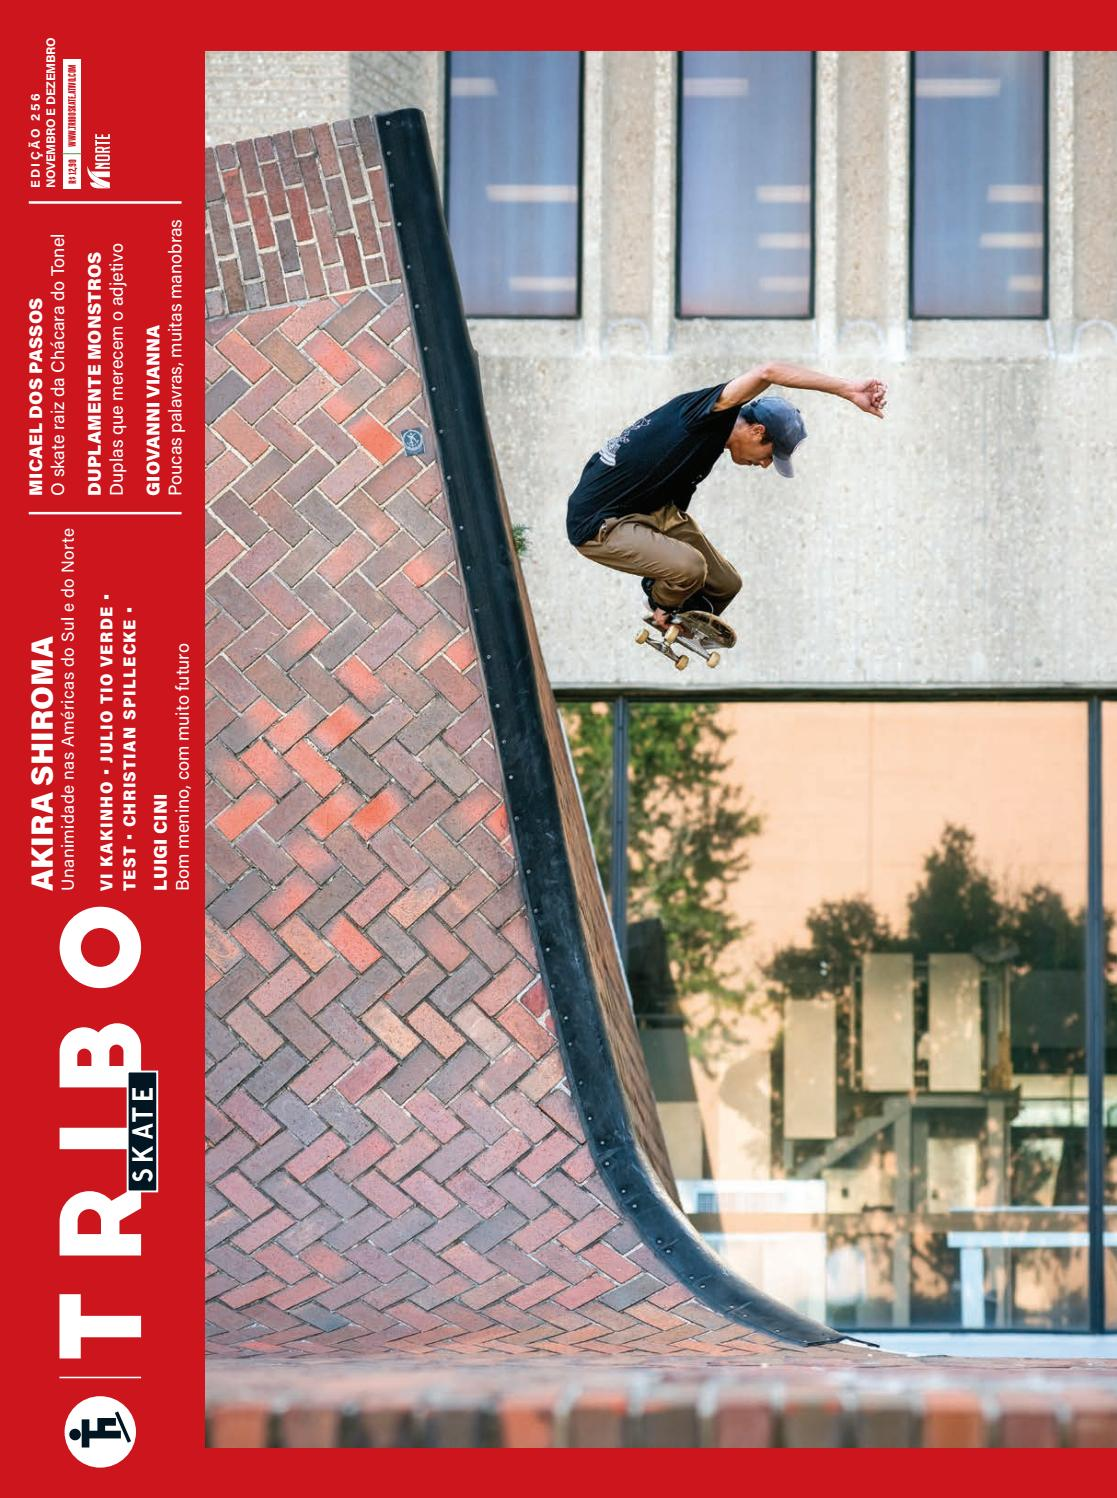 b84807fa5a7 Tribo Skate  256 by Revista Tribo Skate - issuu